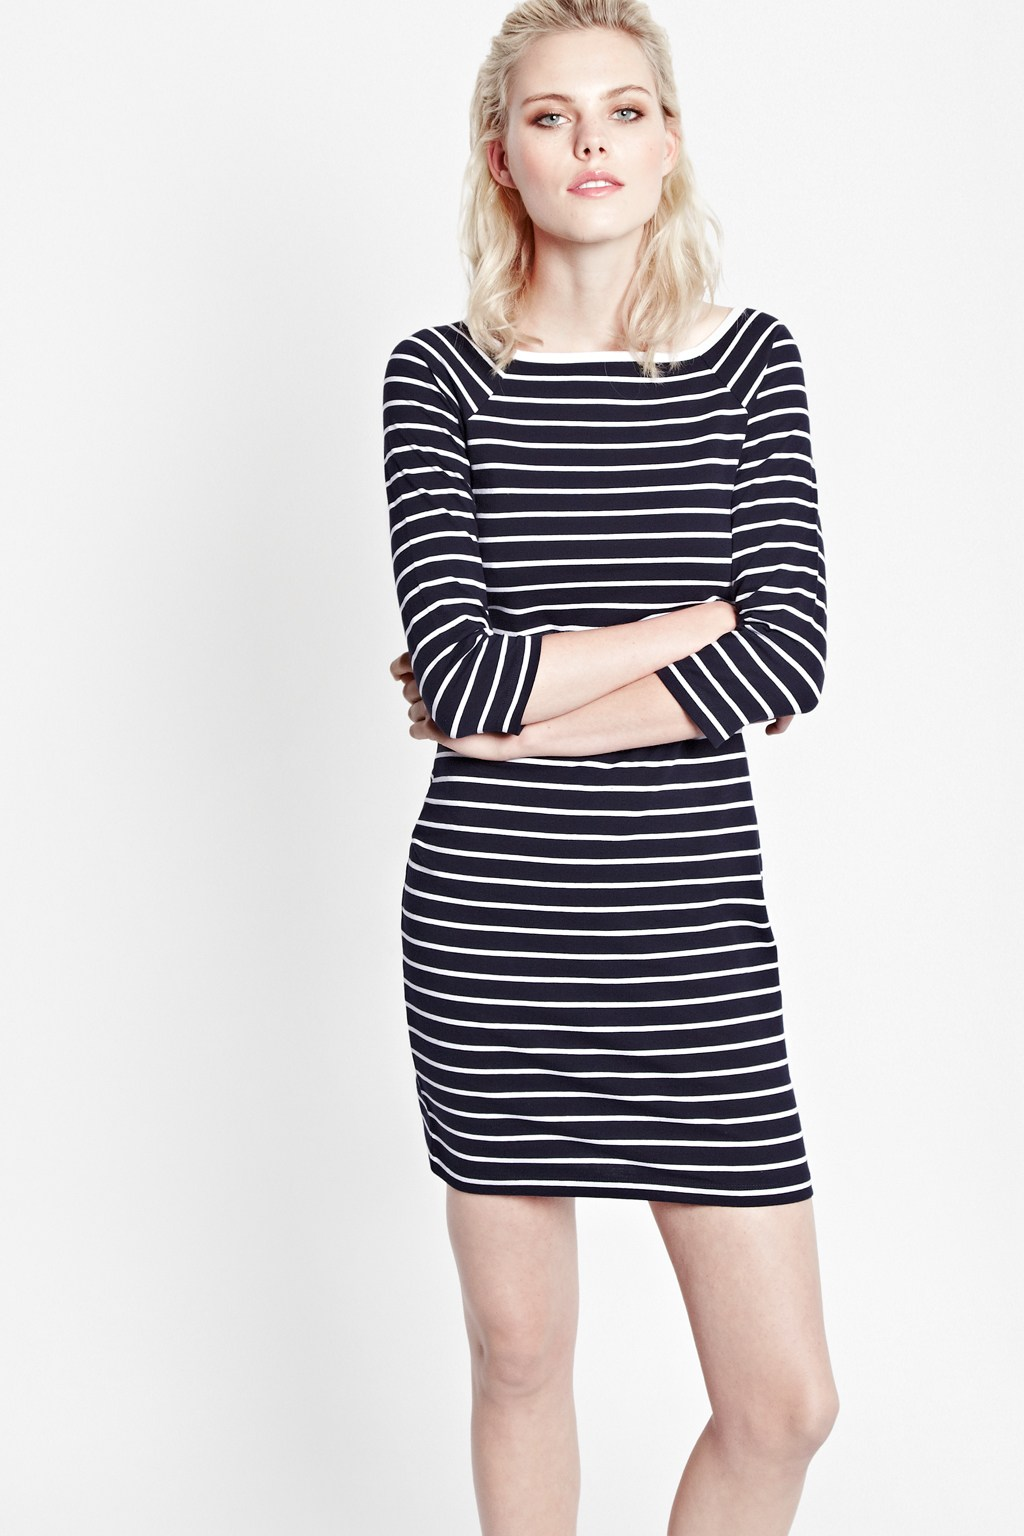 tim tim dress, FRENCH CONNECTION, £40